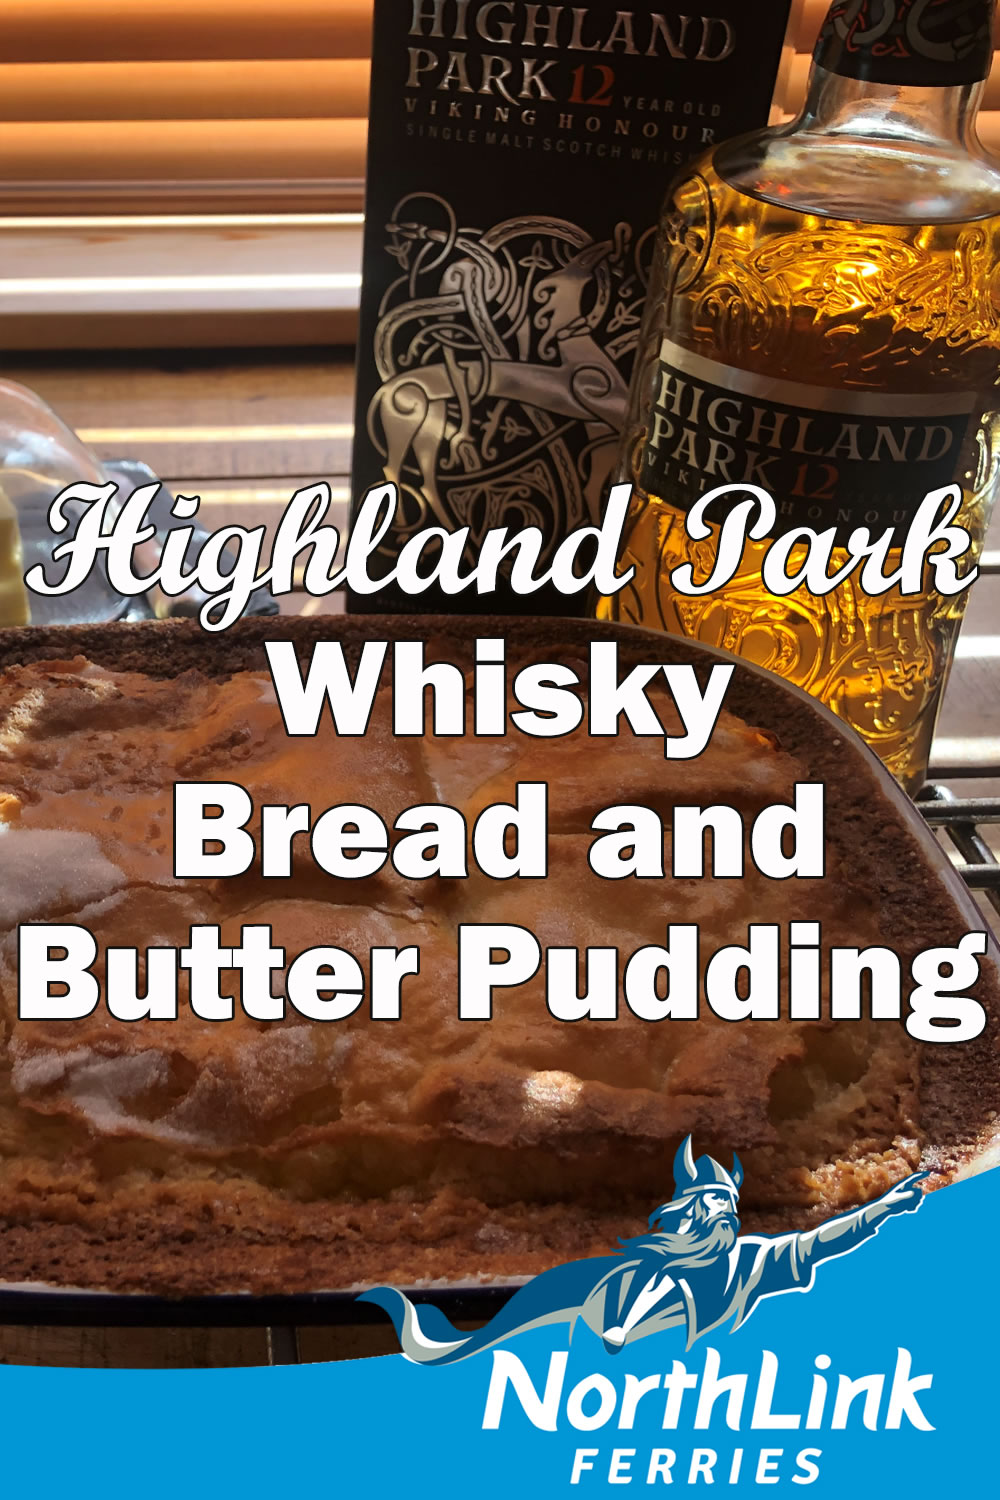 Highland Park Whisky Bread and Butter Pudding